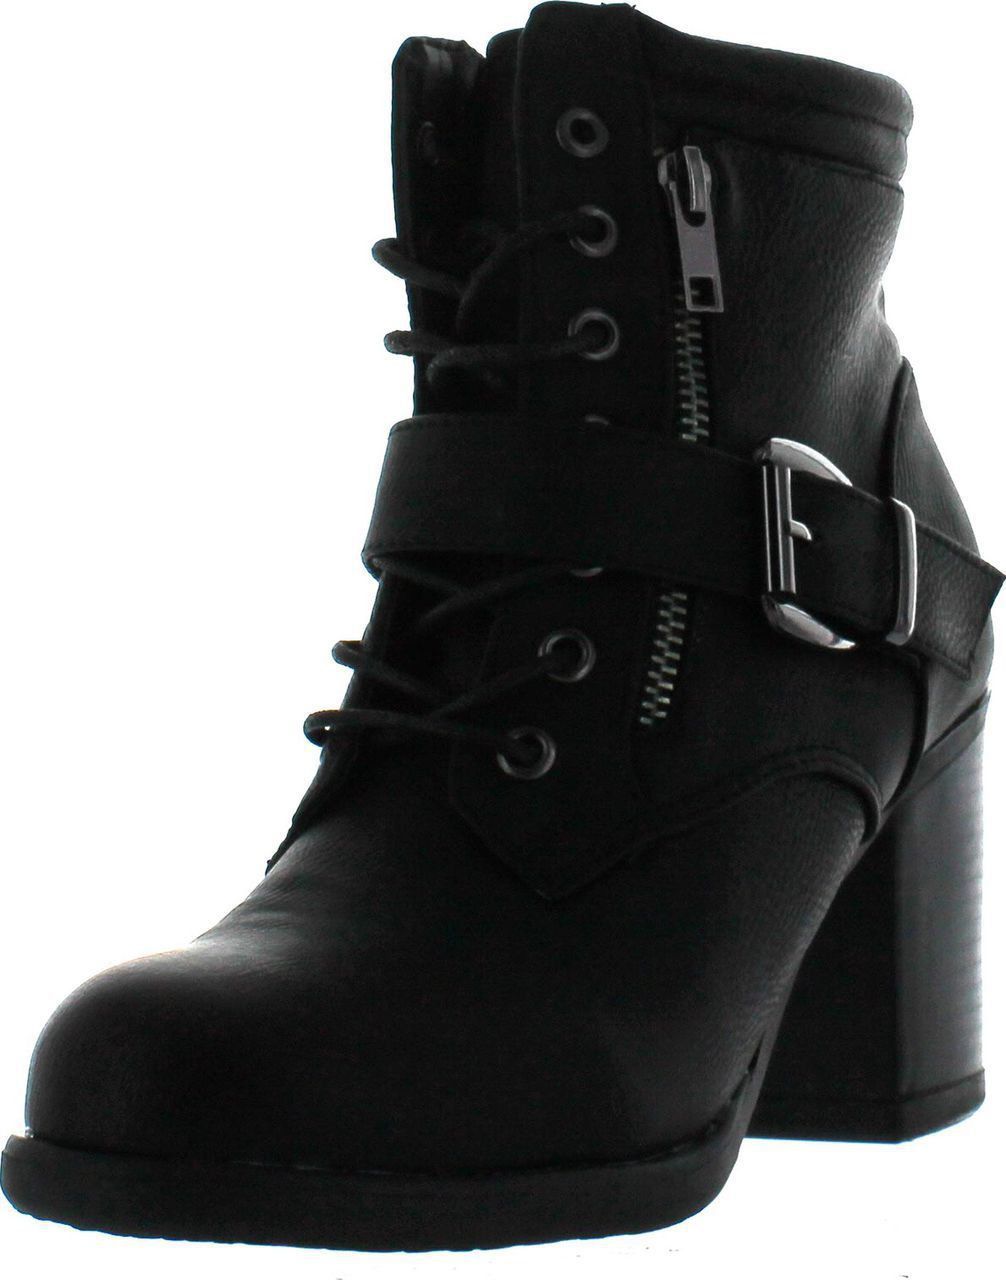 54a71ac9e0844 Betani Tanya-1 Women s Lace Up Buckle Strap Chunky Heel Combat Ankle Booties  - ShoeCenter.com